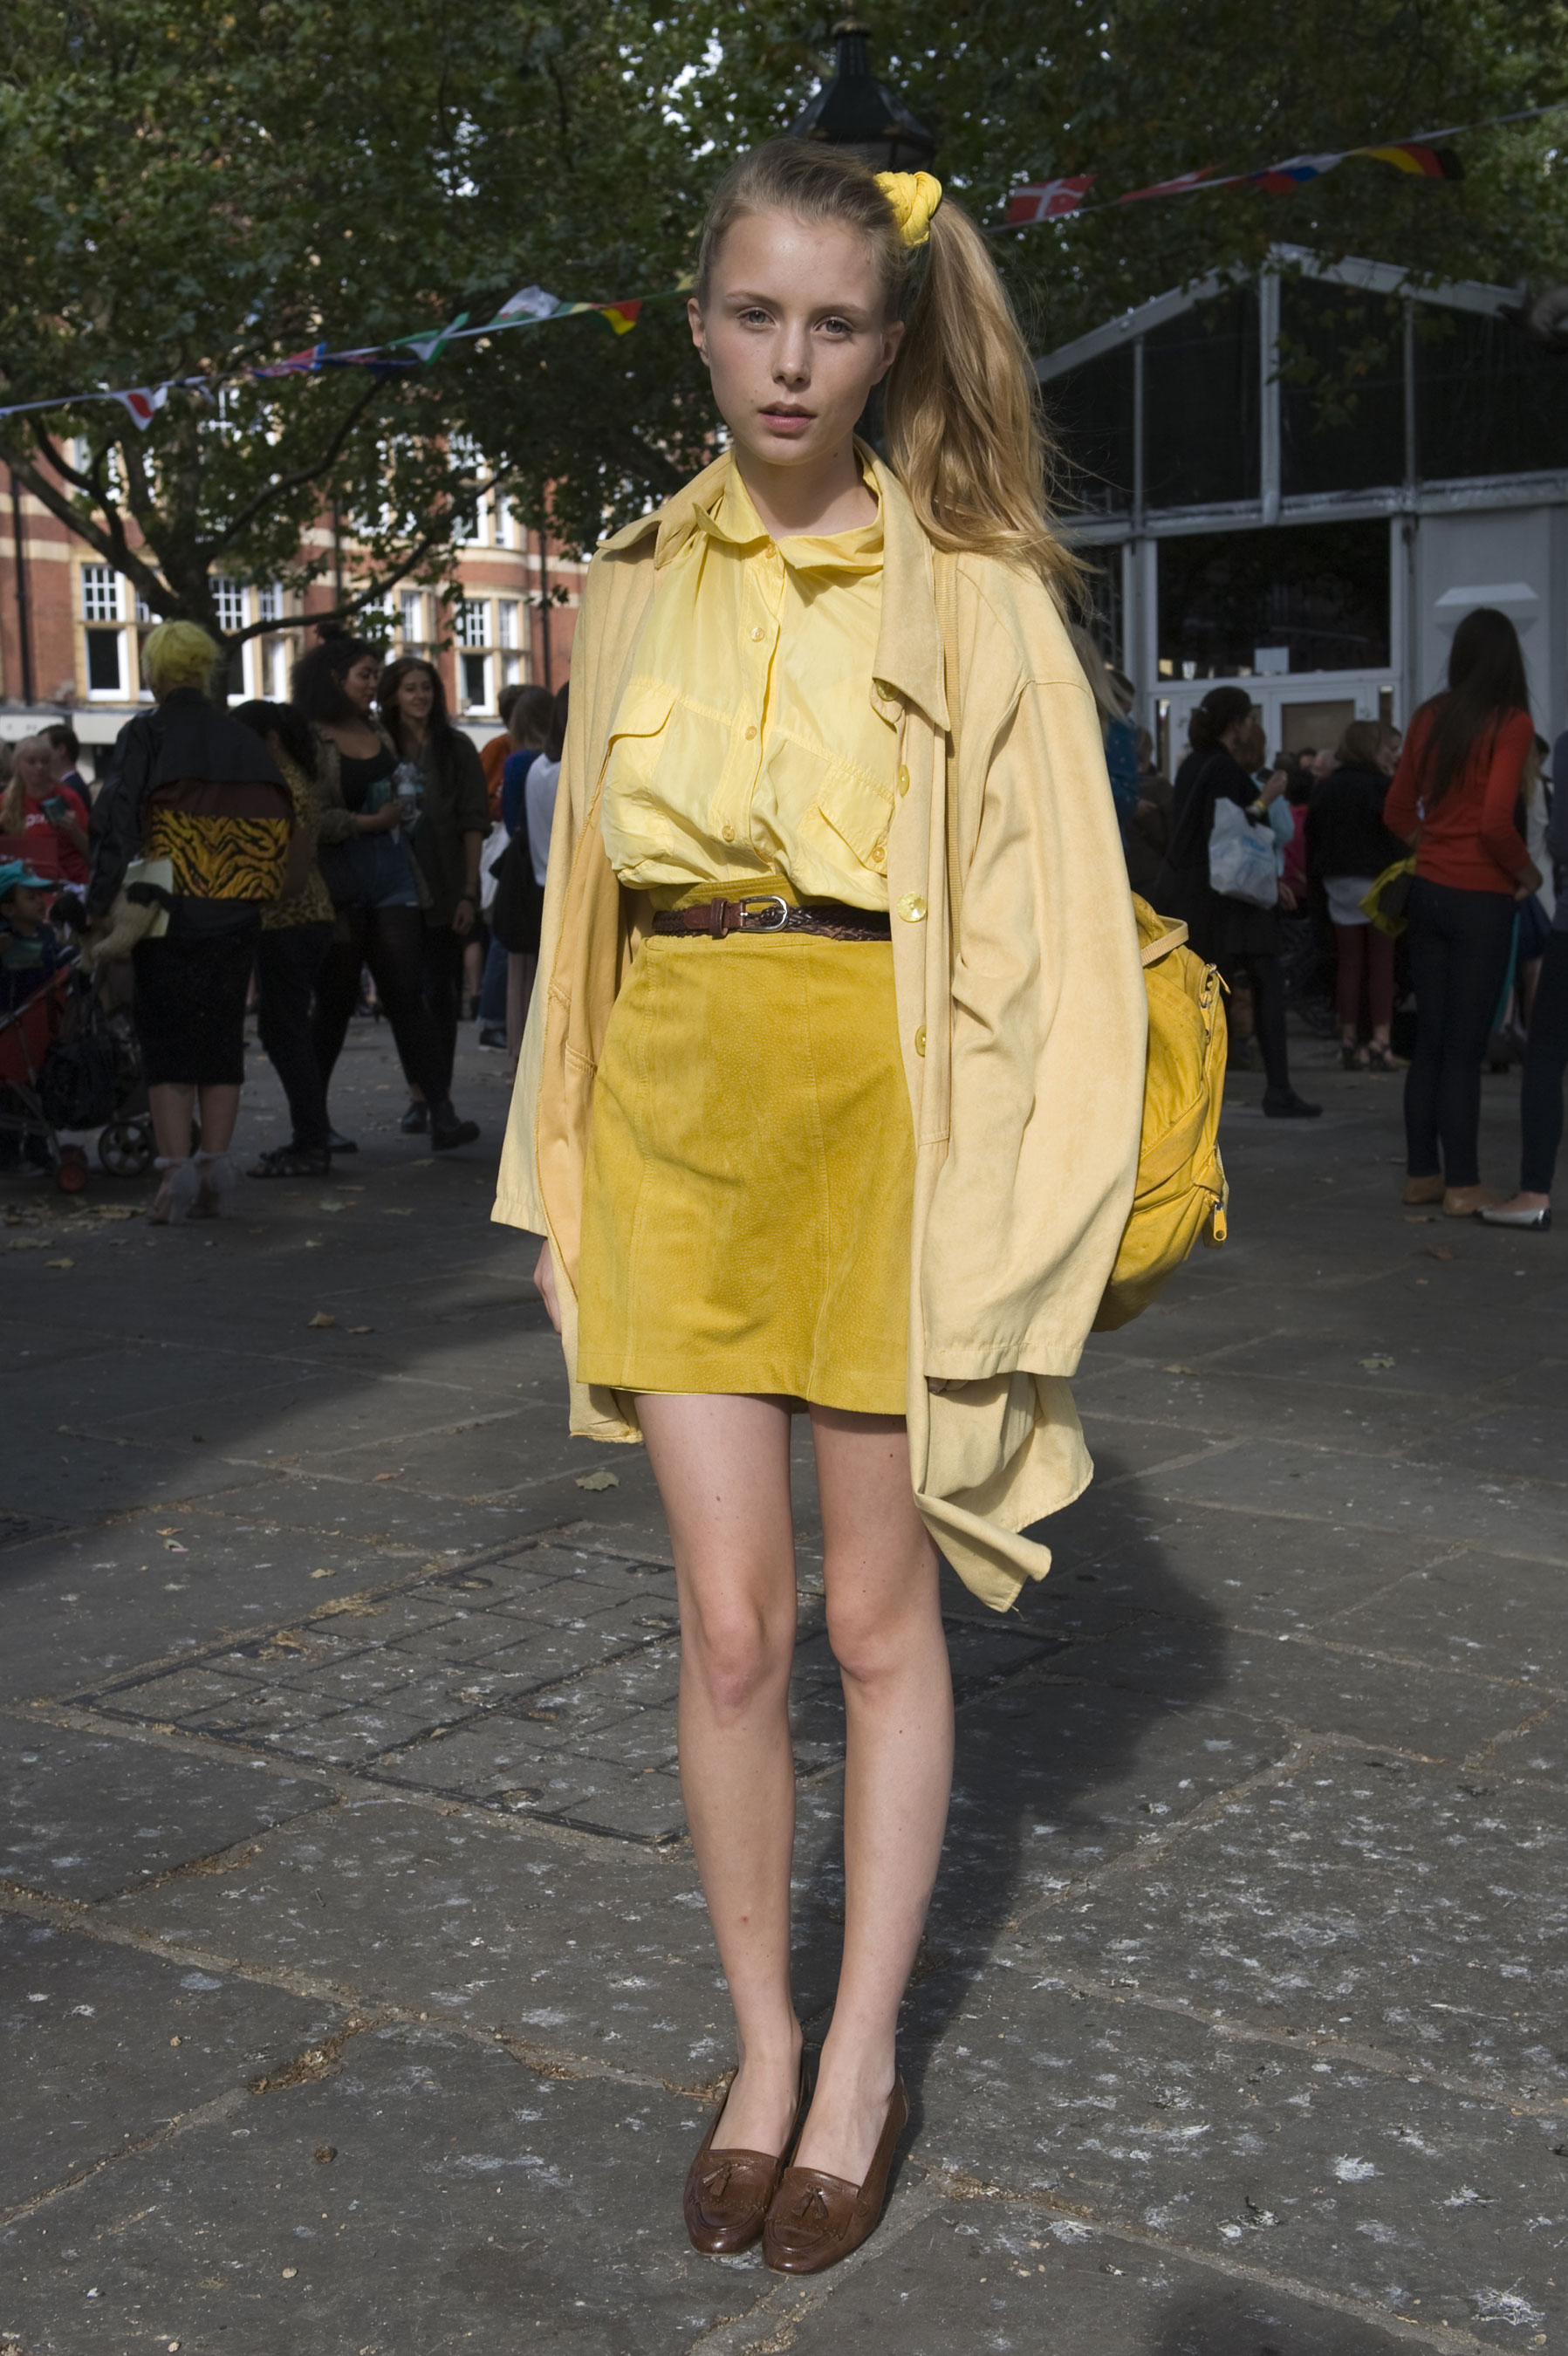 Monochromatic color play in shades of perky yellow livened up these preppy pieces.